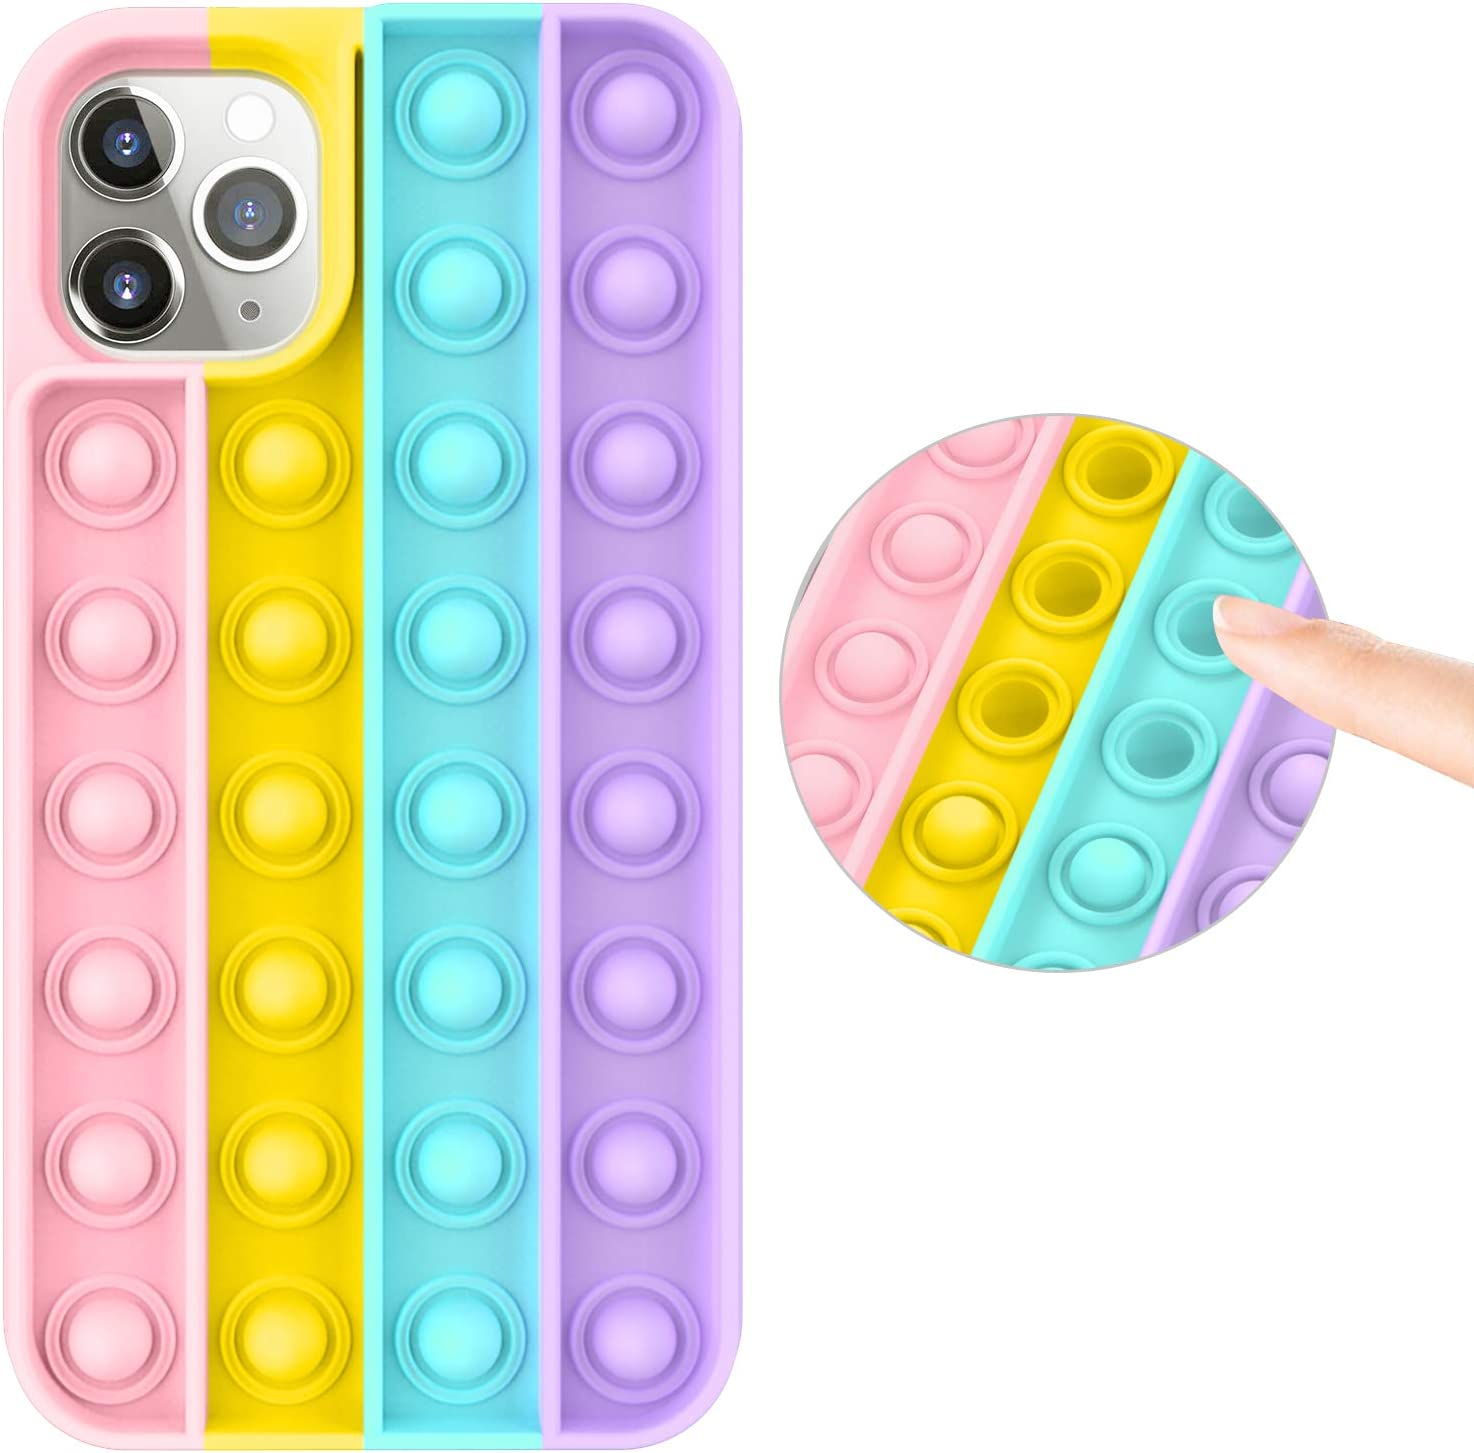 Fidget Toy Case for iPhone 11 Pro Max, Stress Relief Anti-Anxiety Press Bubble Pops Silicone Rubber Protective Phone Case for Women, Girls & Kids, Rainbow